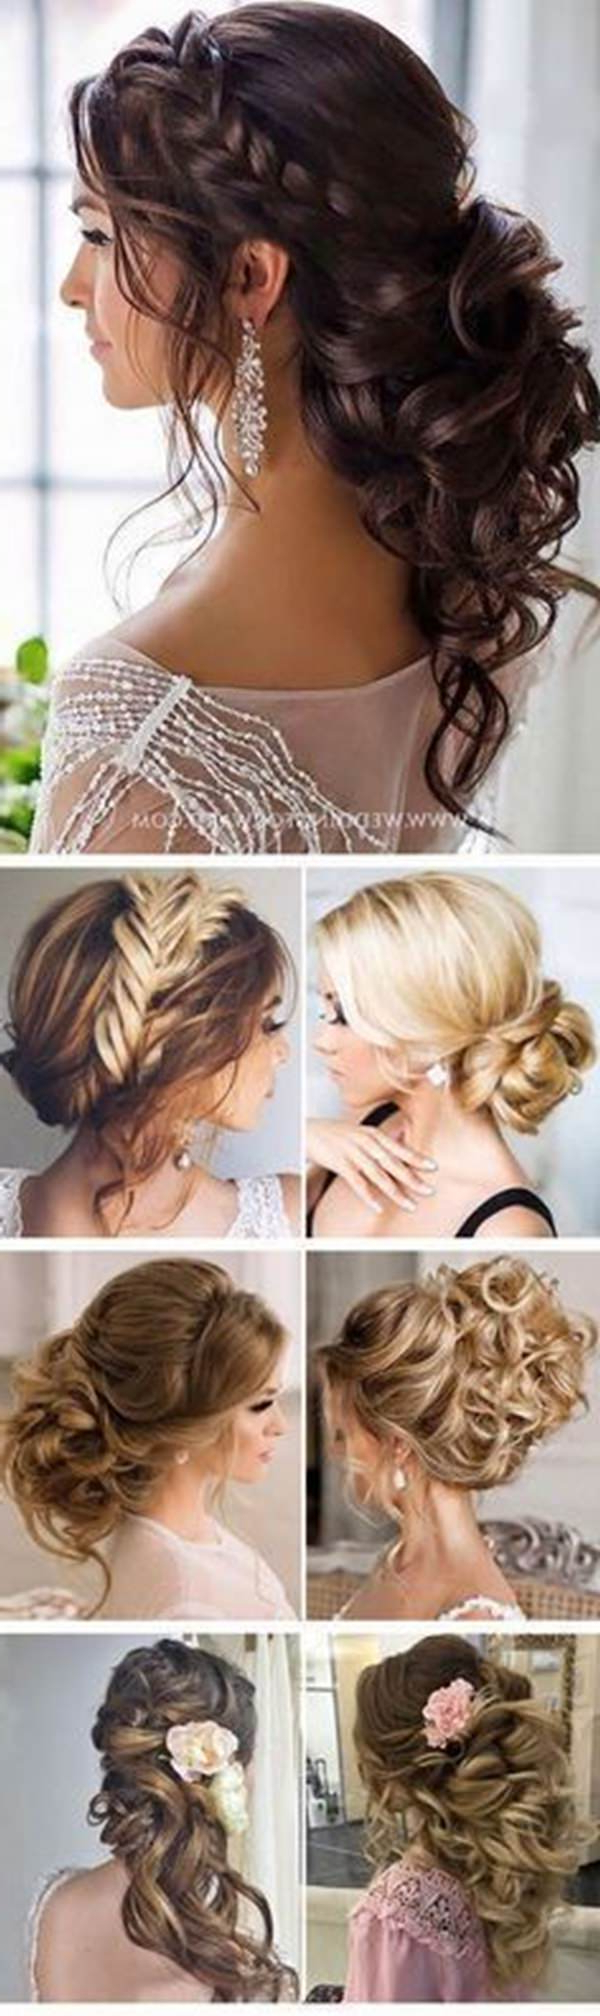 154 Updos For Long Hair Featuring Beautiful Braids And Buns In Most Up To Date Low Pearled Prom Updos (View 3 of 20)